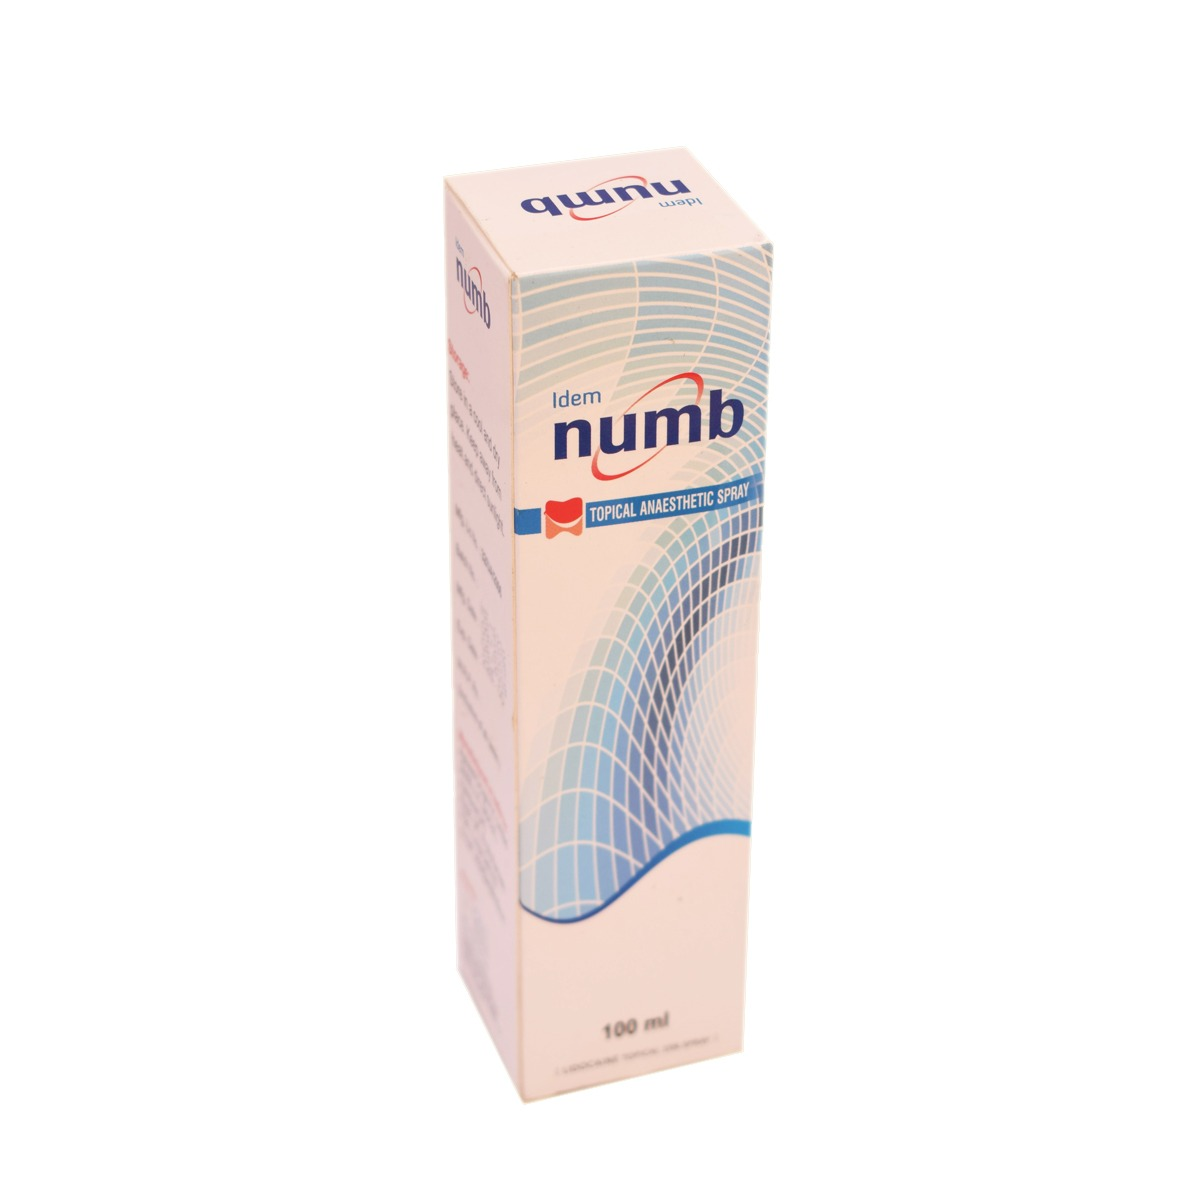 numb spray